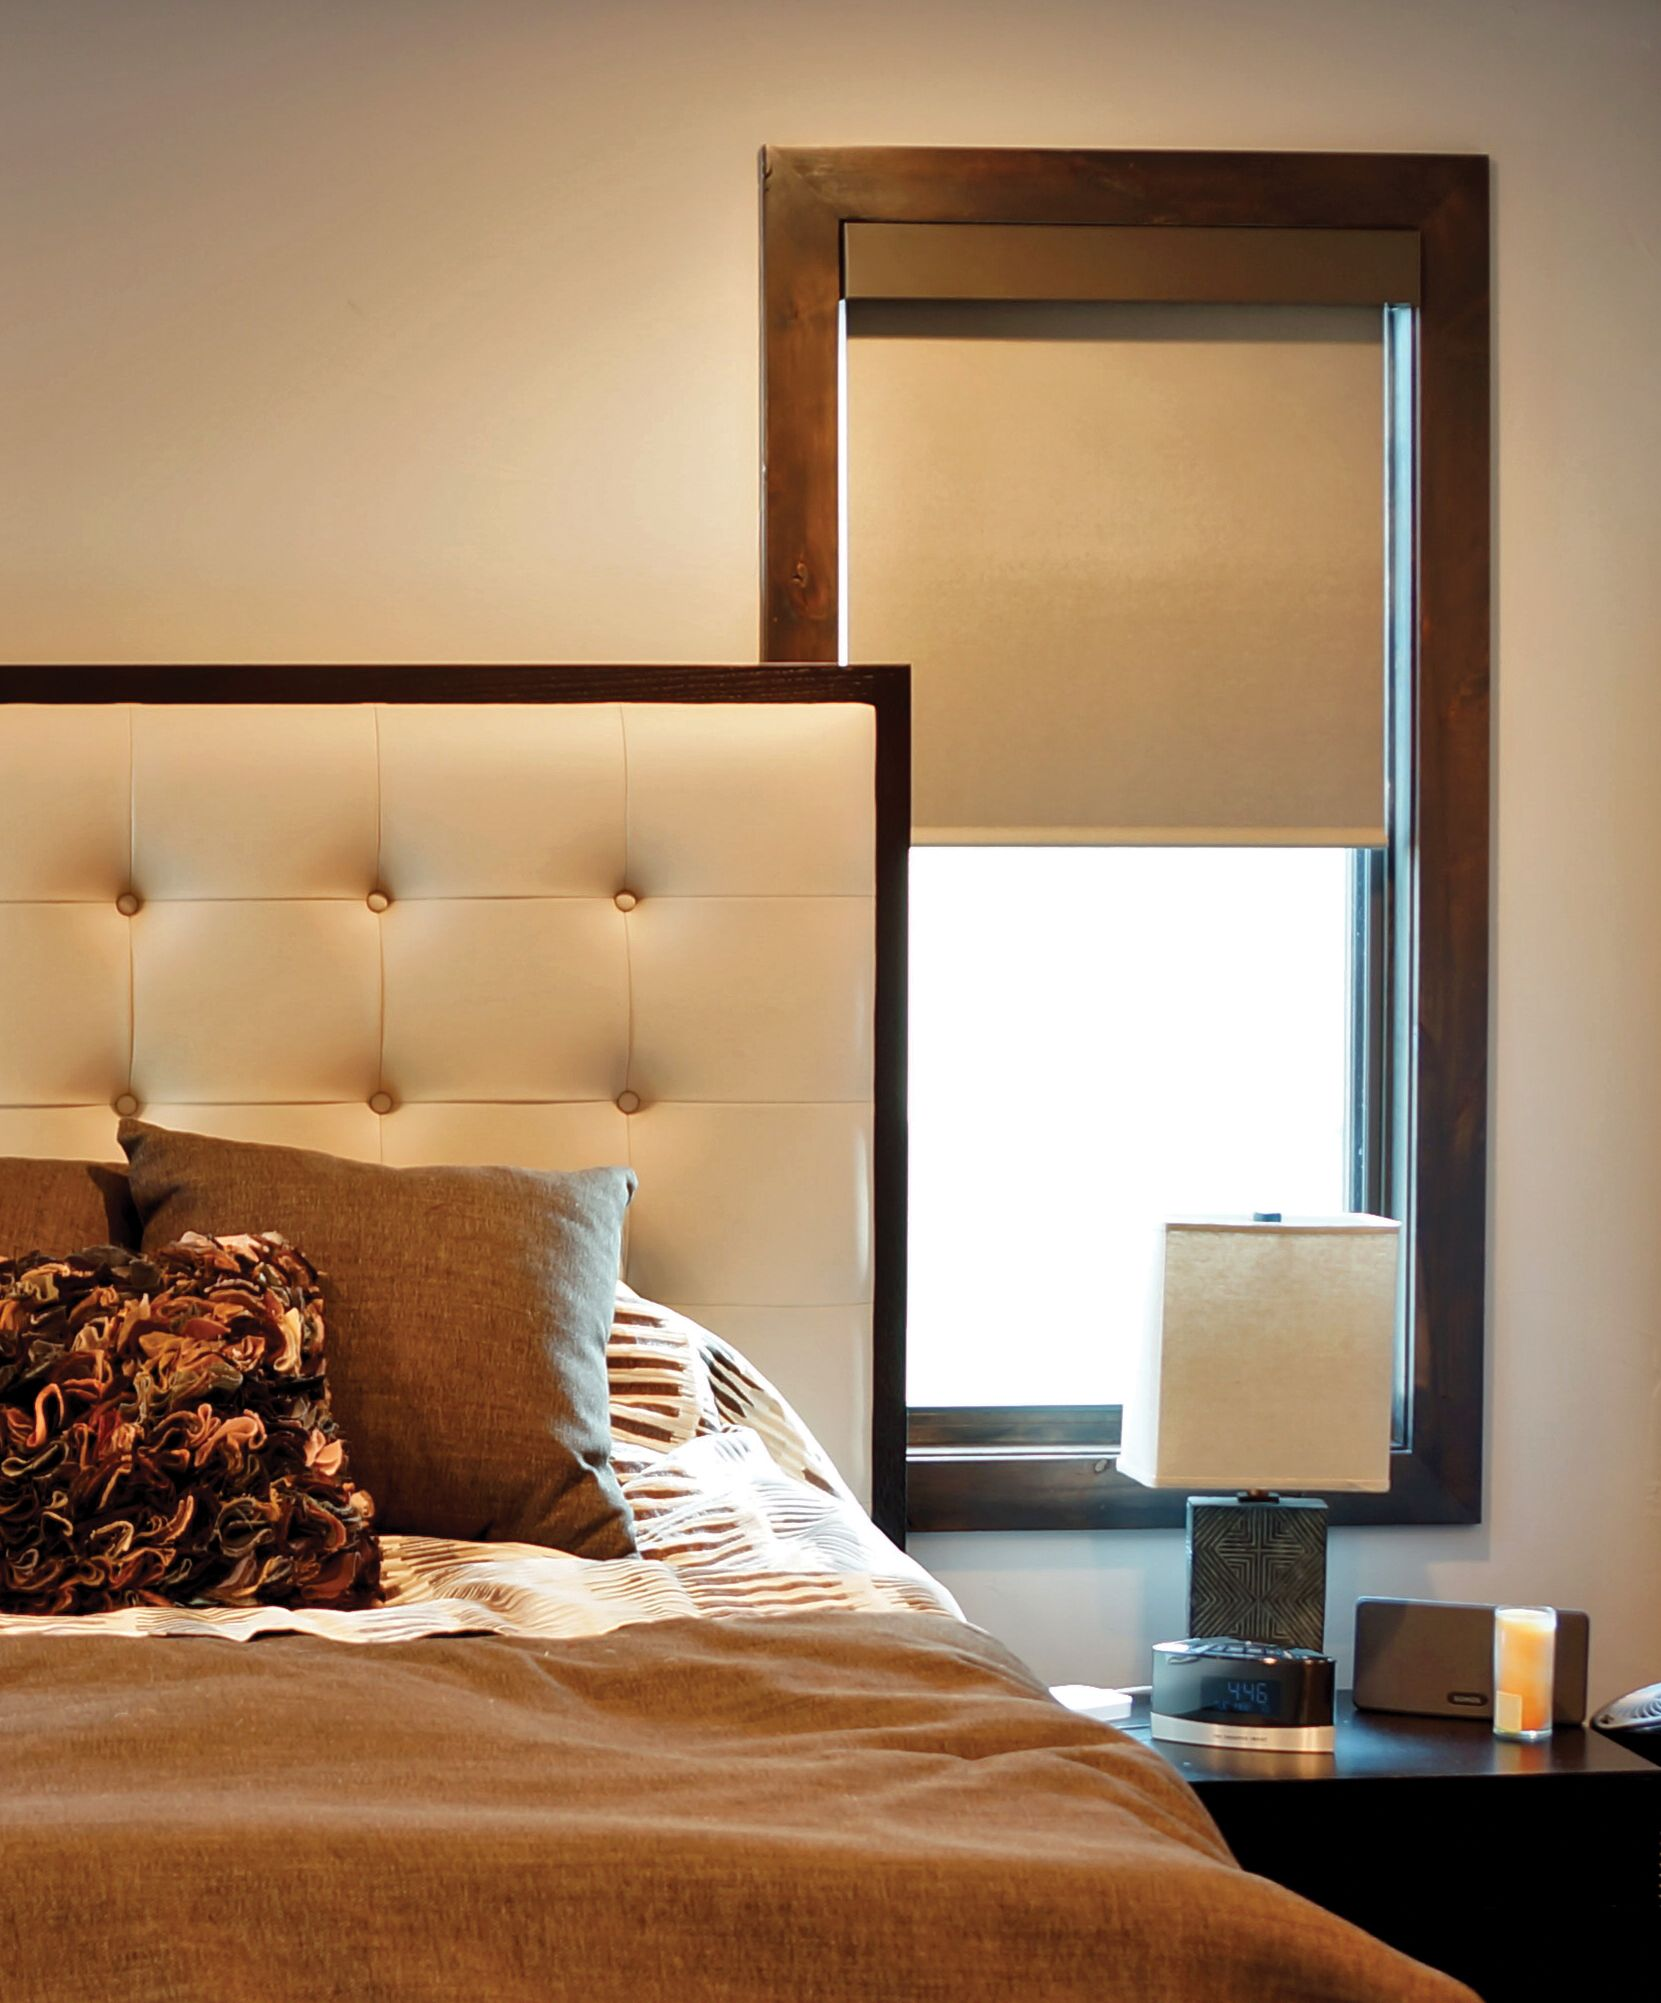 Insolroll Roller Black Out Shades for bedroom comfort